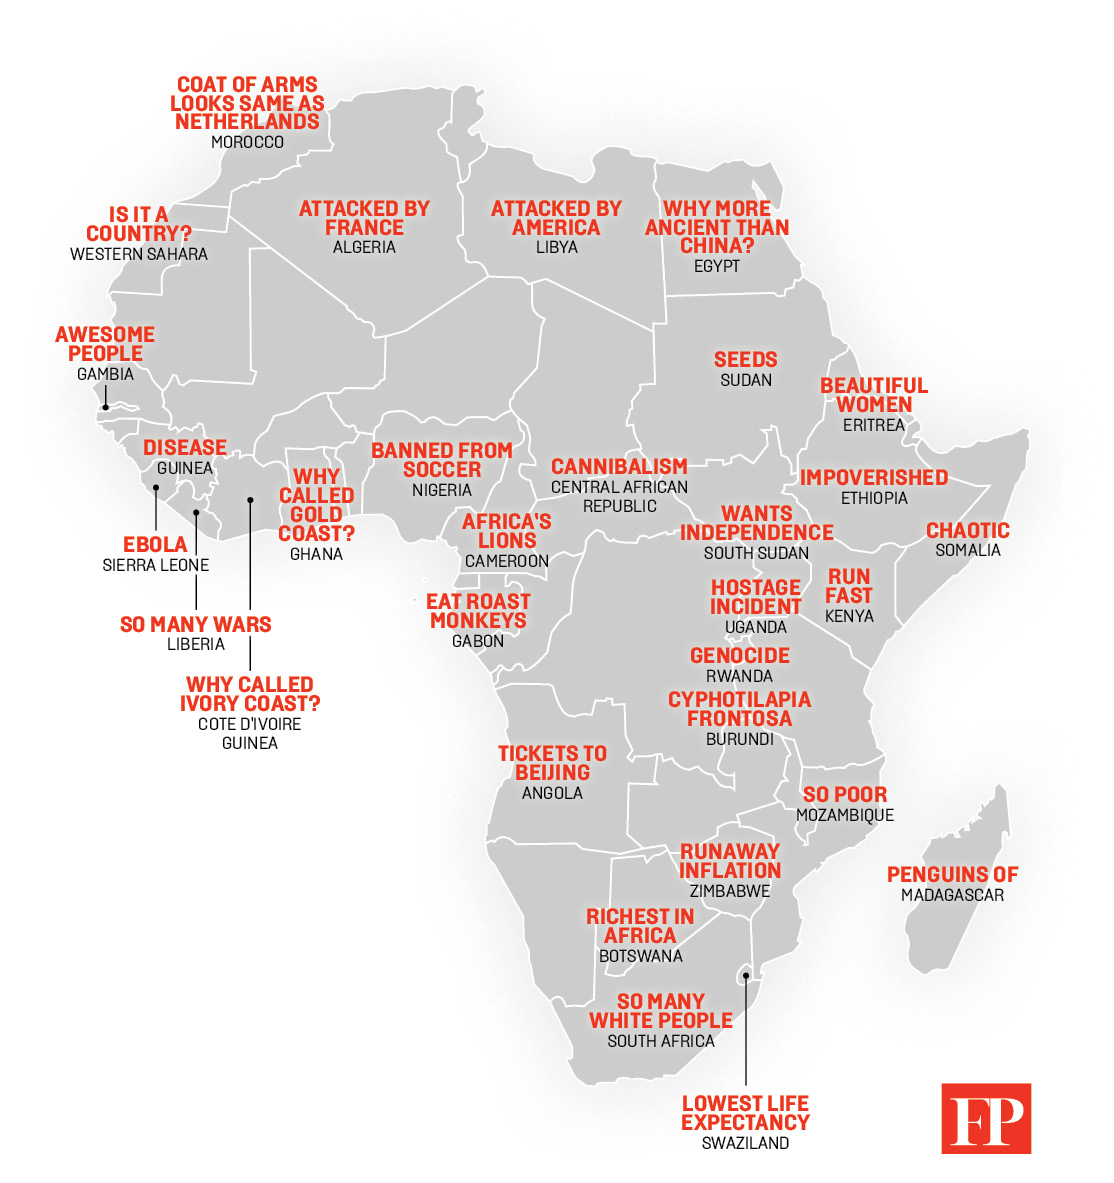 Map Of Africa Madagascar.Map China S Stereotypes Of Africa From Chaotic Somalia To